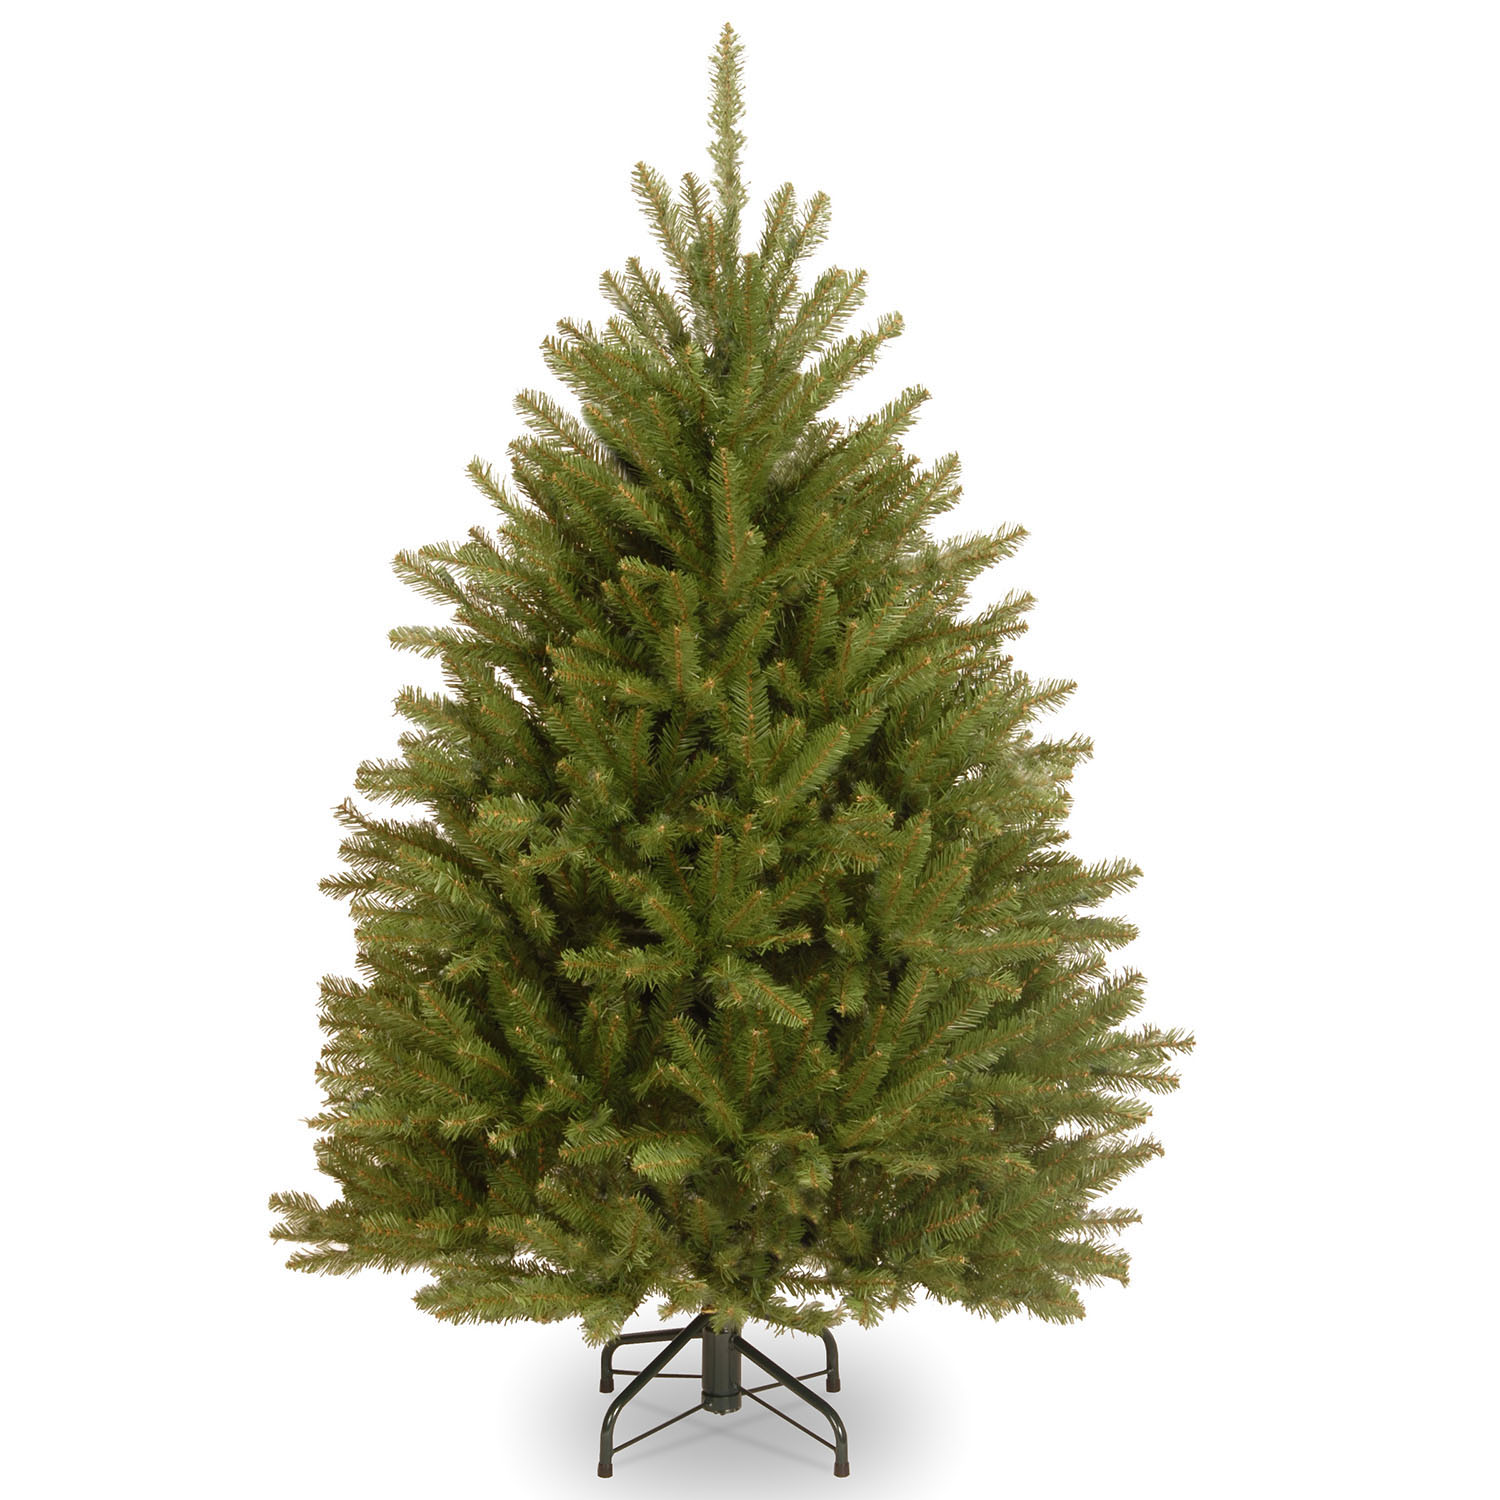 Exquisite Dunhill-Christmas-Fir-Tree Product Picture 392